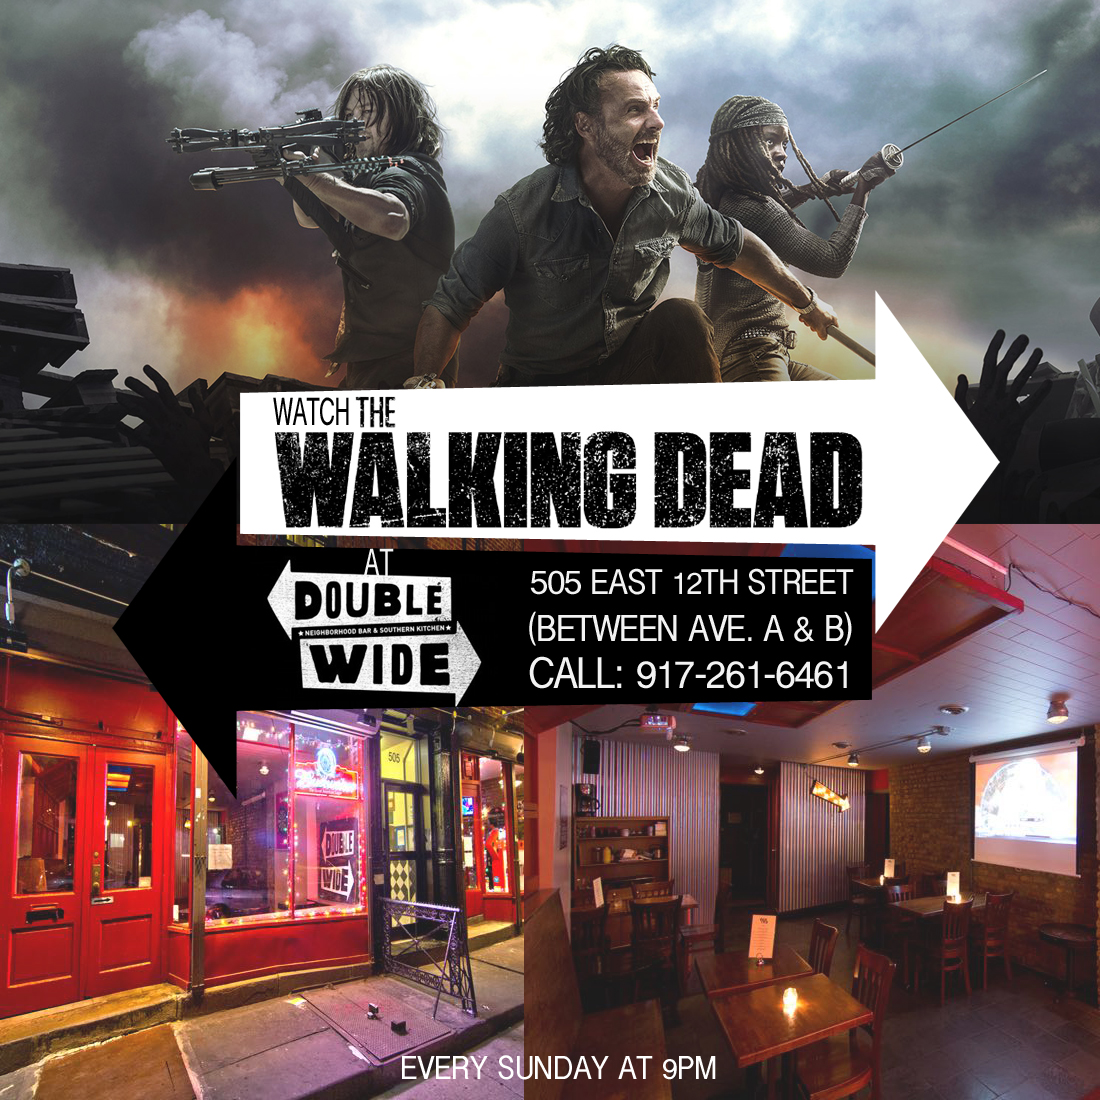 Bars Watching TWD at DOUBLE WIDE southern bar and grill 12th street between ave A and B